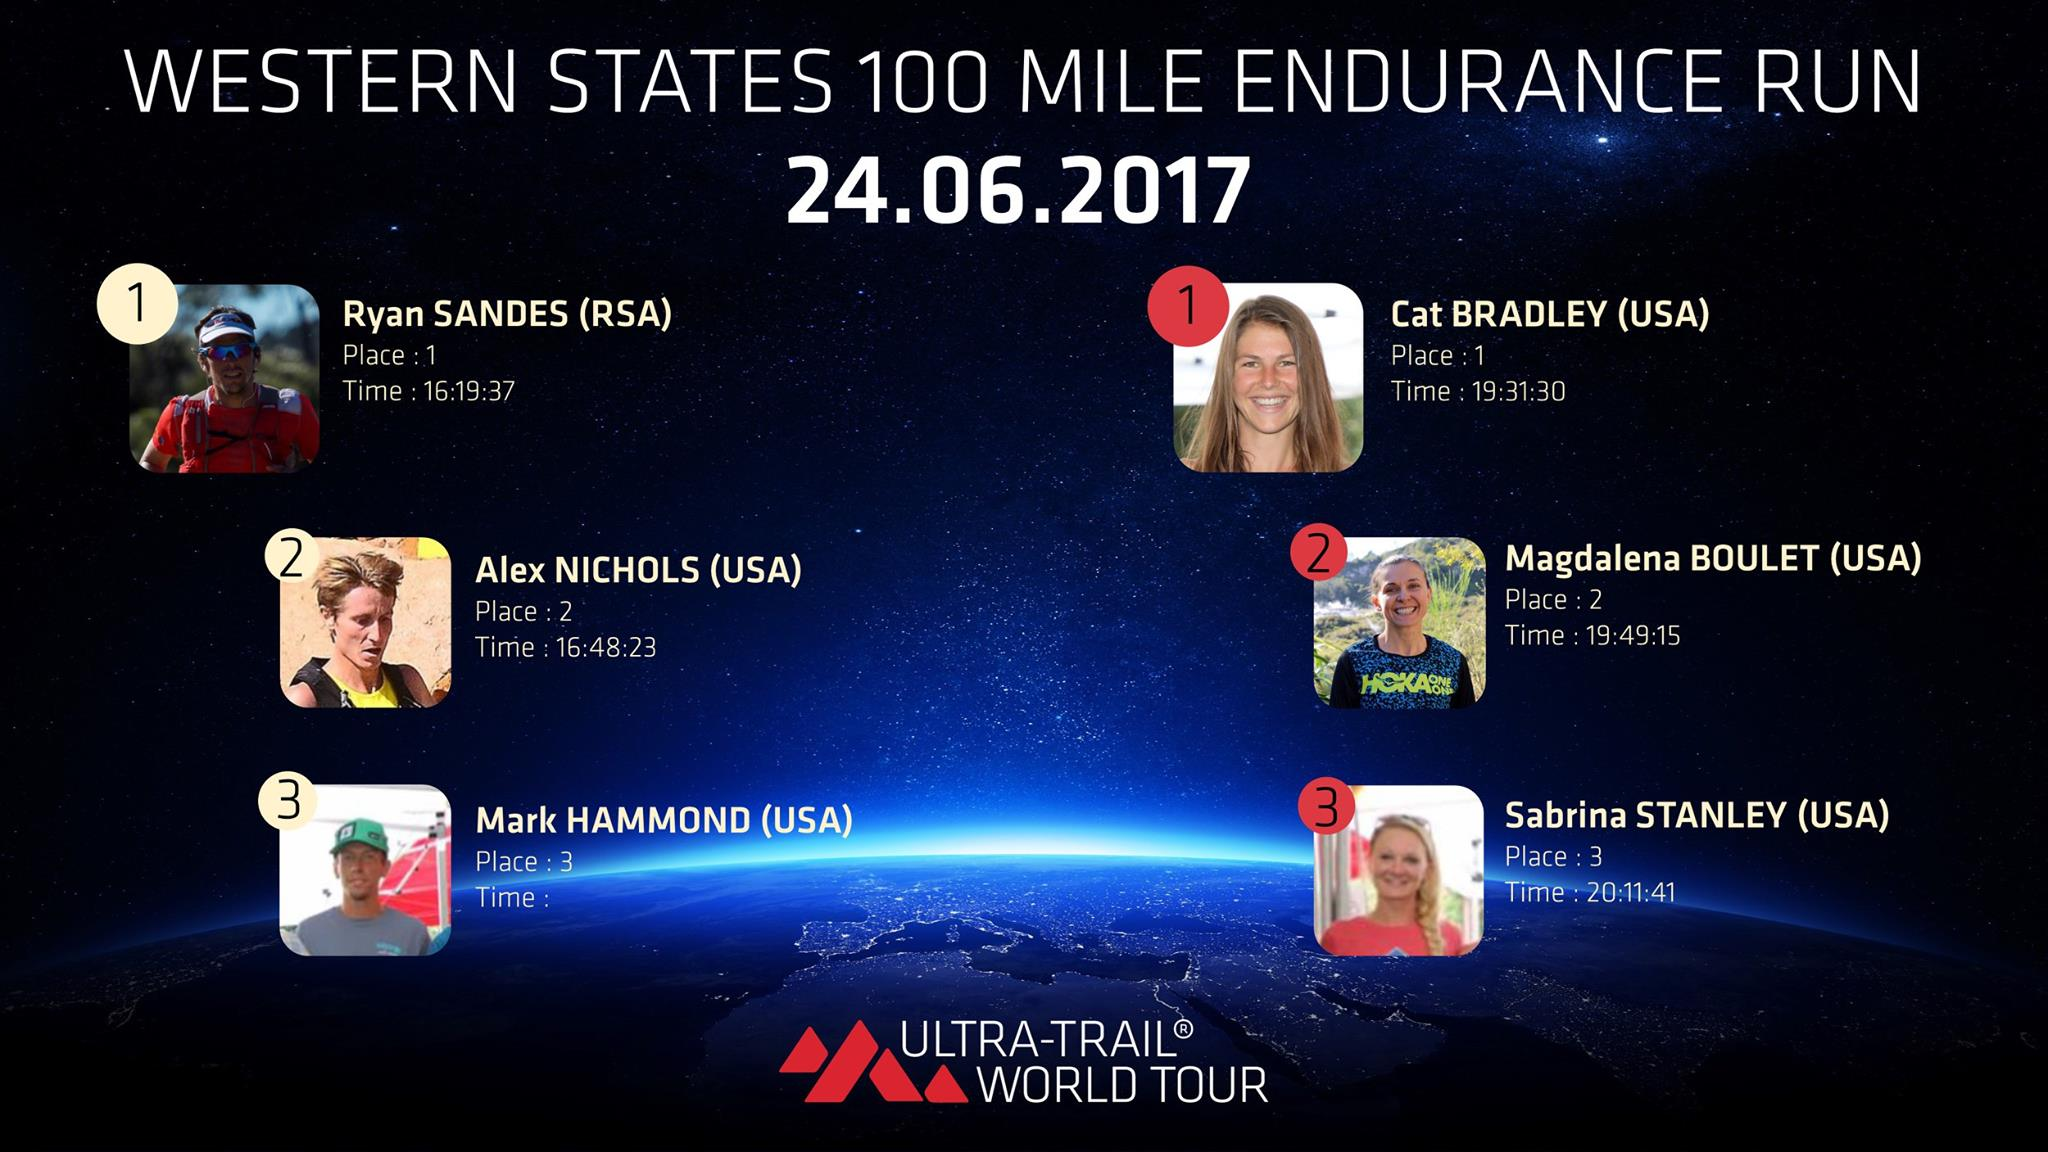 Expresky z hôr 68 - Western States 100 mile Endurance Run 2017, zdroj: Ultra-Trail World Tour